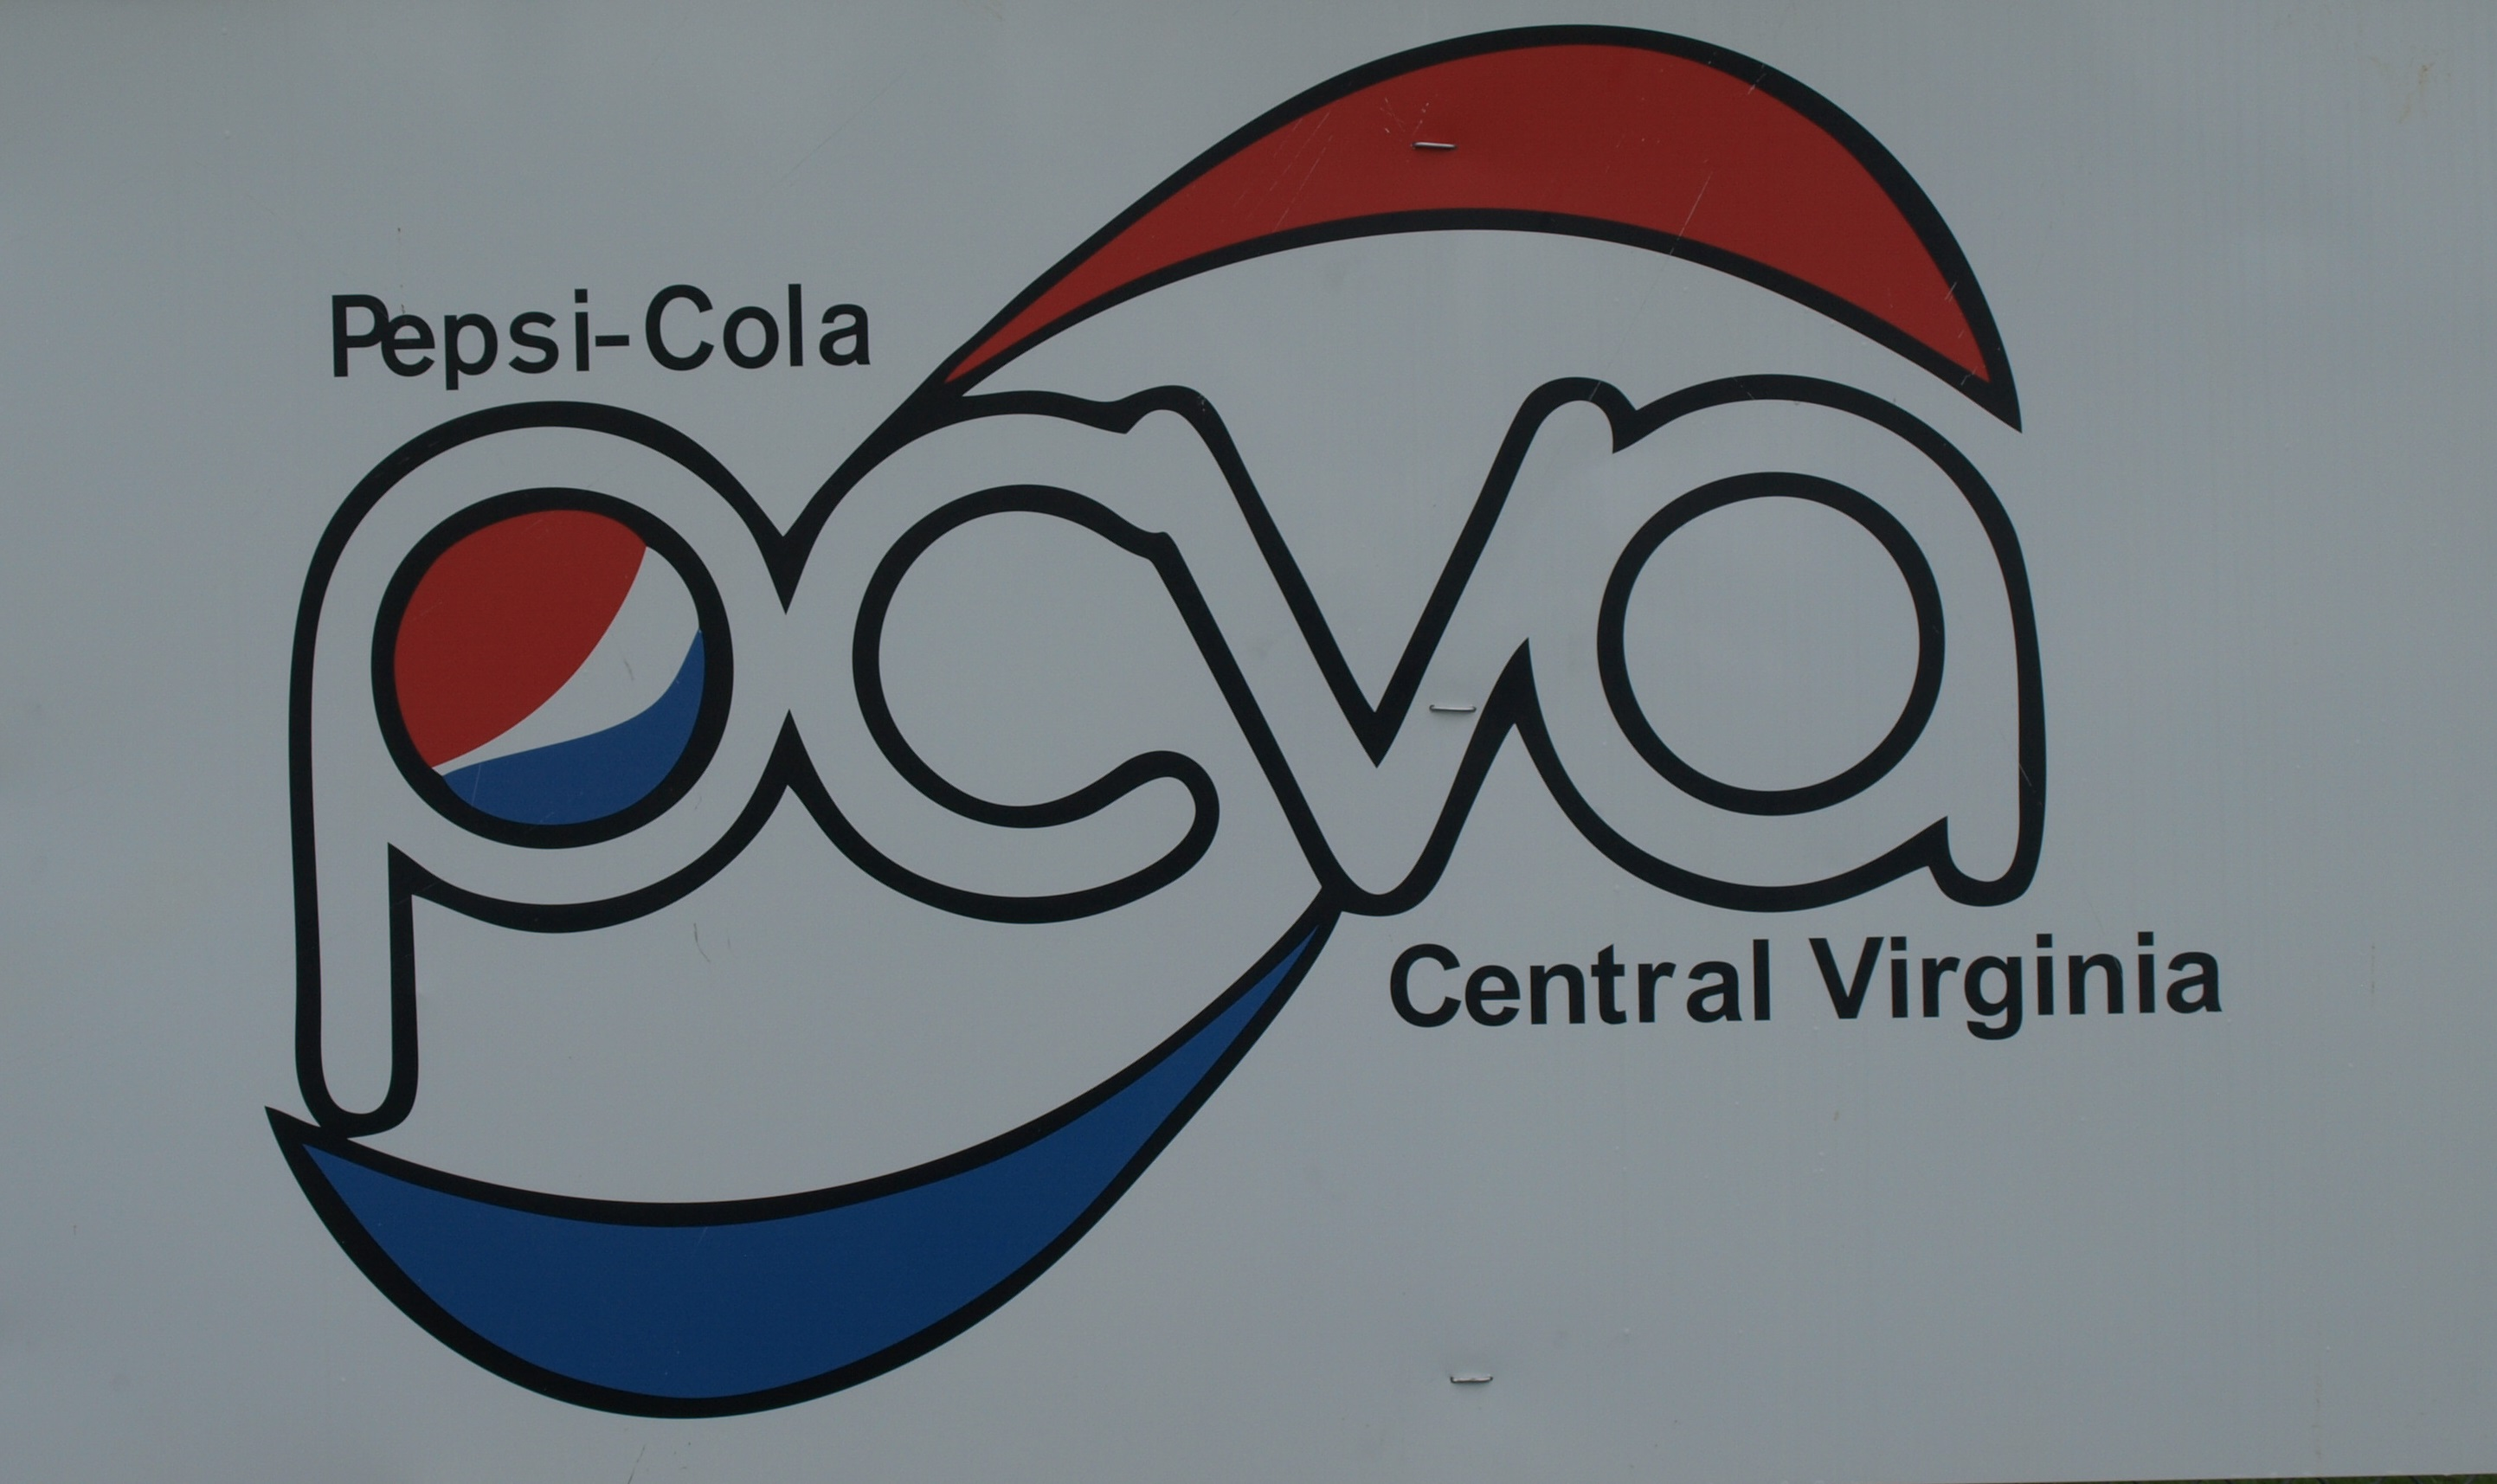 Pepsi Cola of Central Virginia